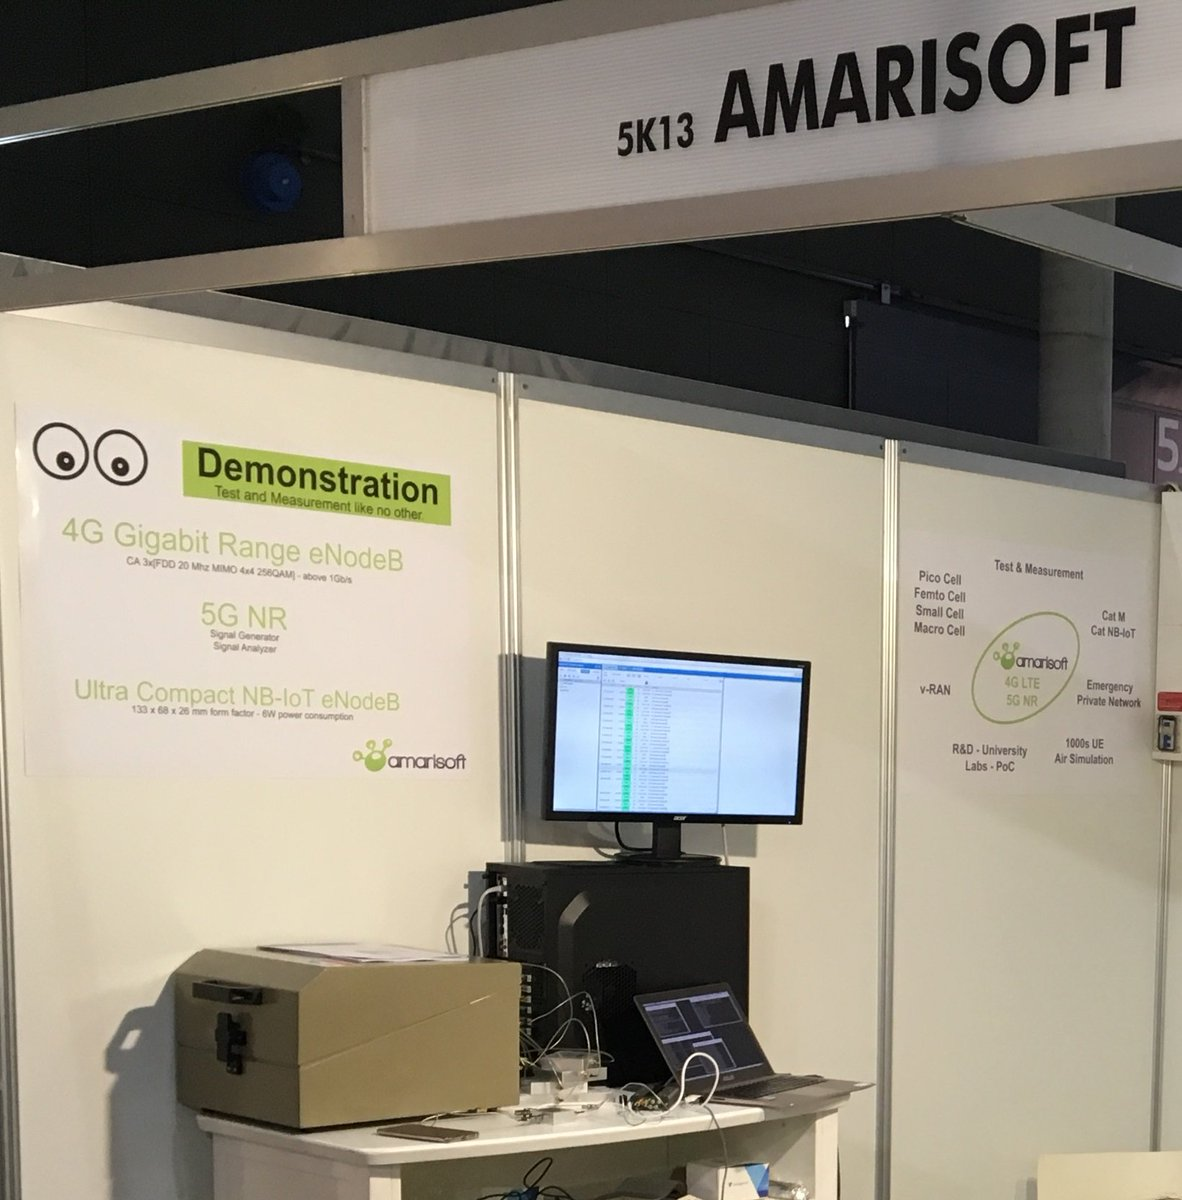 Last day at #MWC18 to watch @amarisoft live demos and have a chat with our team! #5G NR software, #4G gigabit range #eNodeB and tiny #NB-#IoT #eNodeB